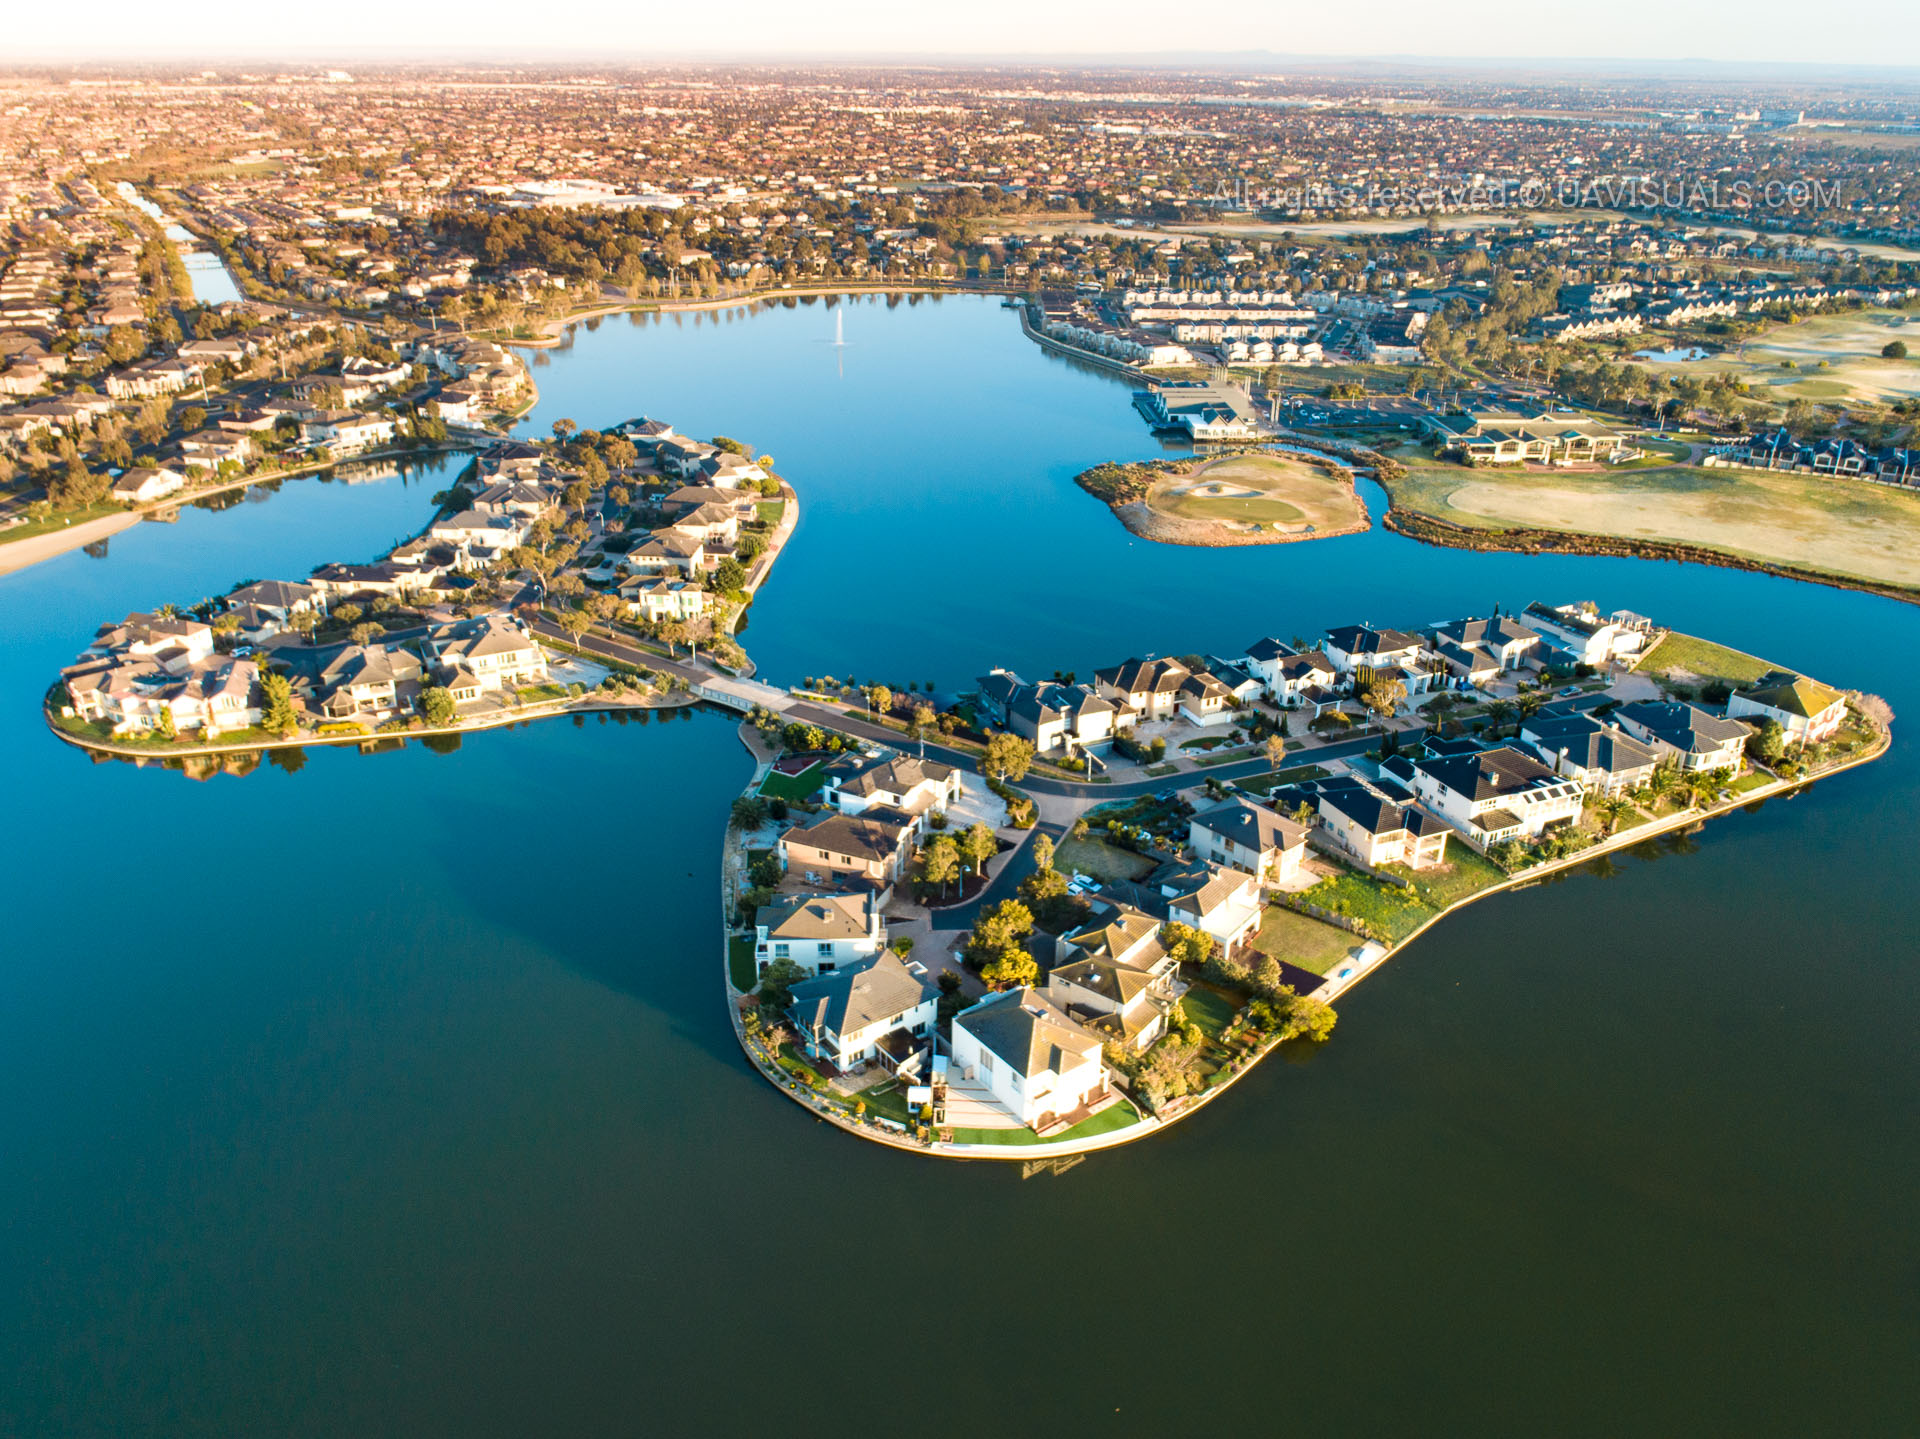 How to shoot drone photos for Real Estate and Property